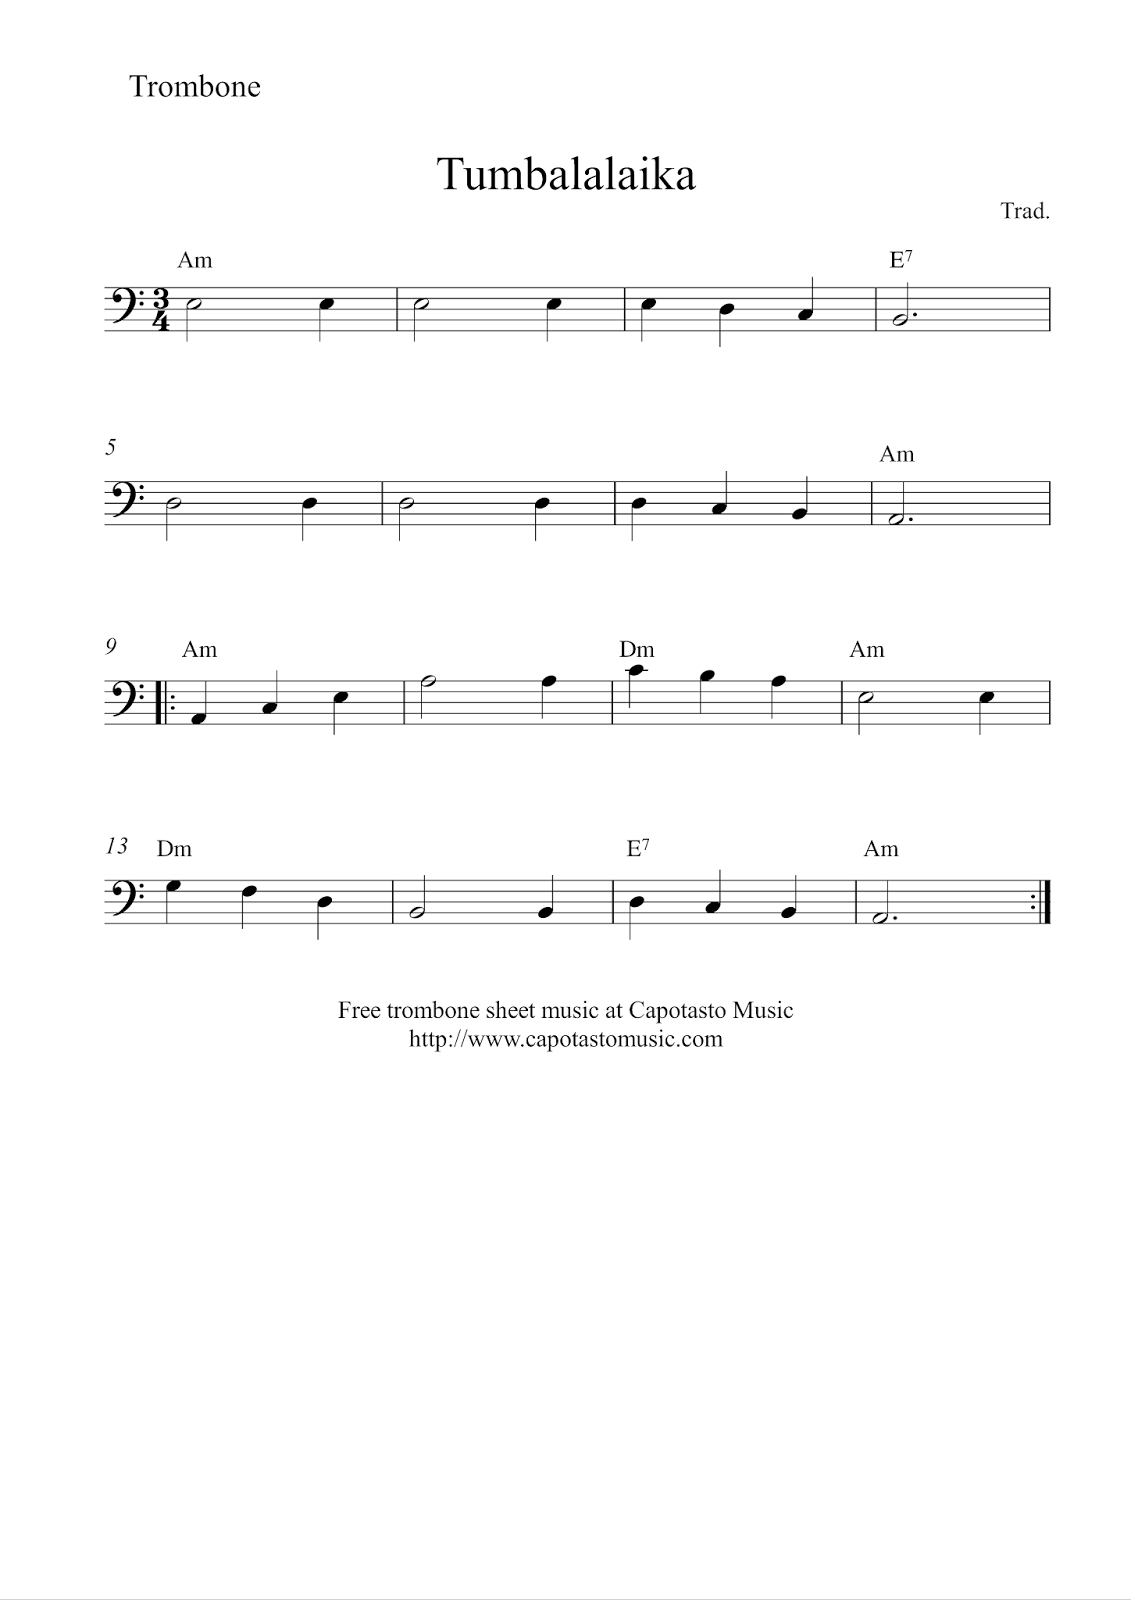 Free Easy Trombone Sheet Music, Tumbalalaika - Sheet Music For Trombone Free Printable